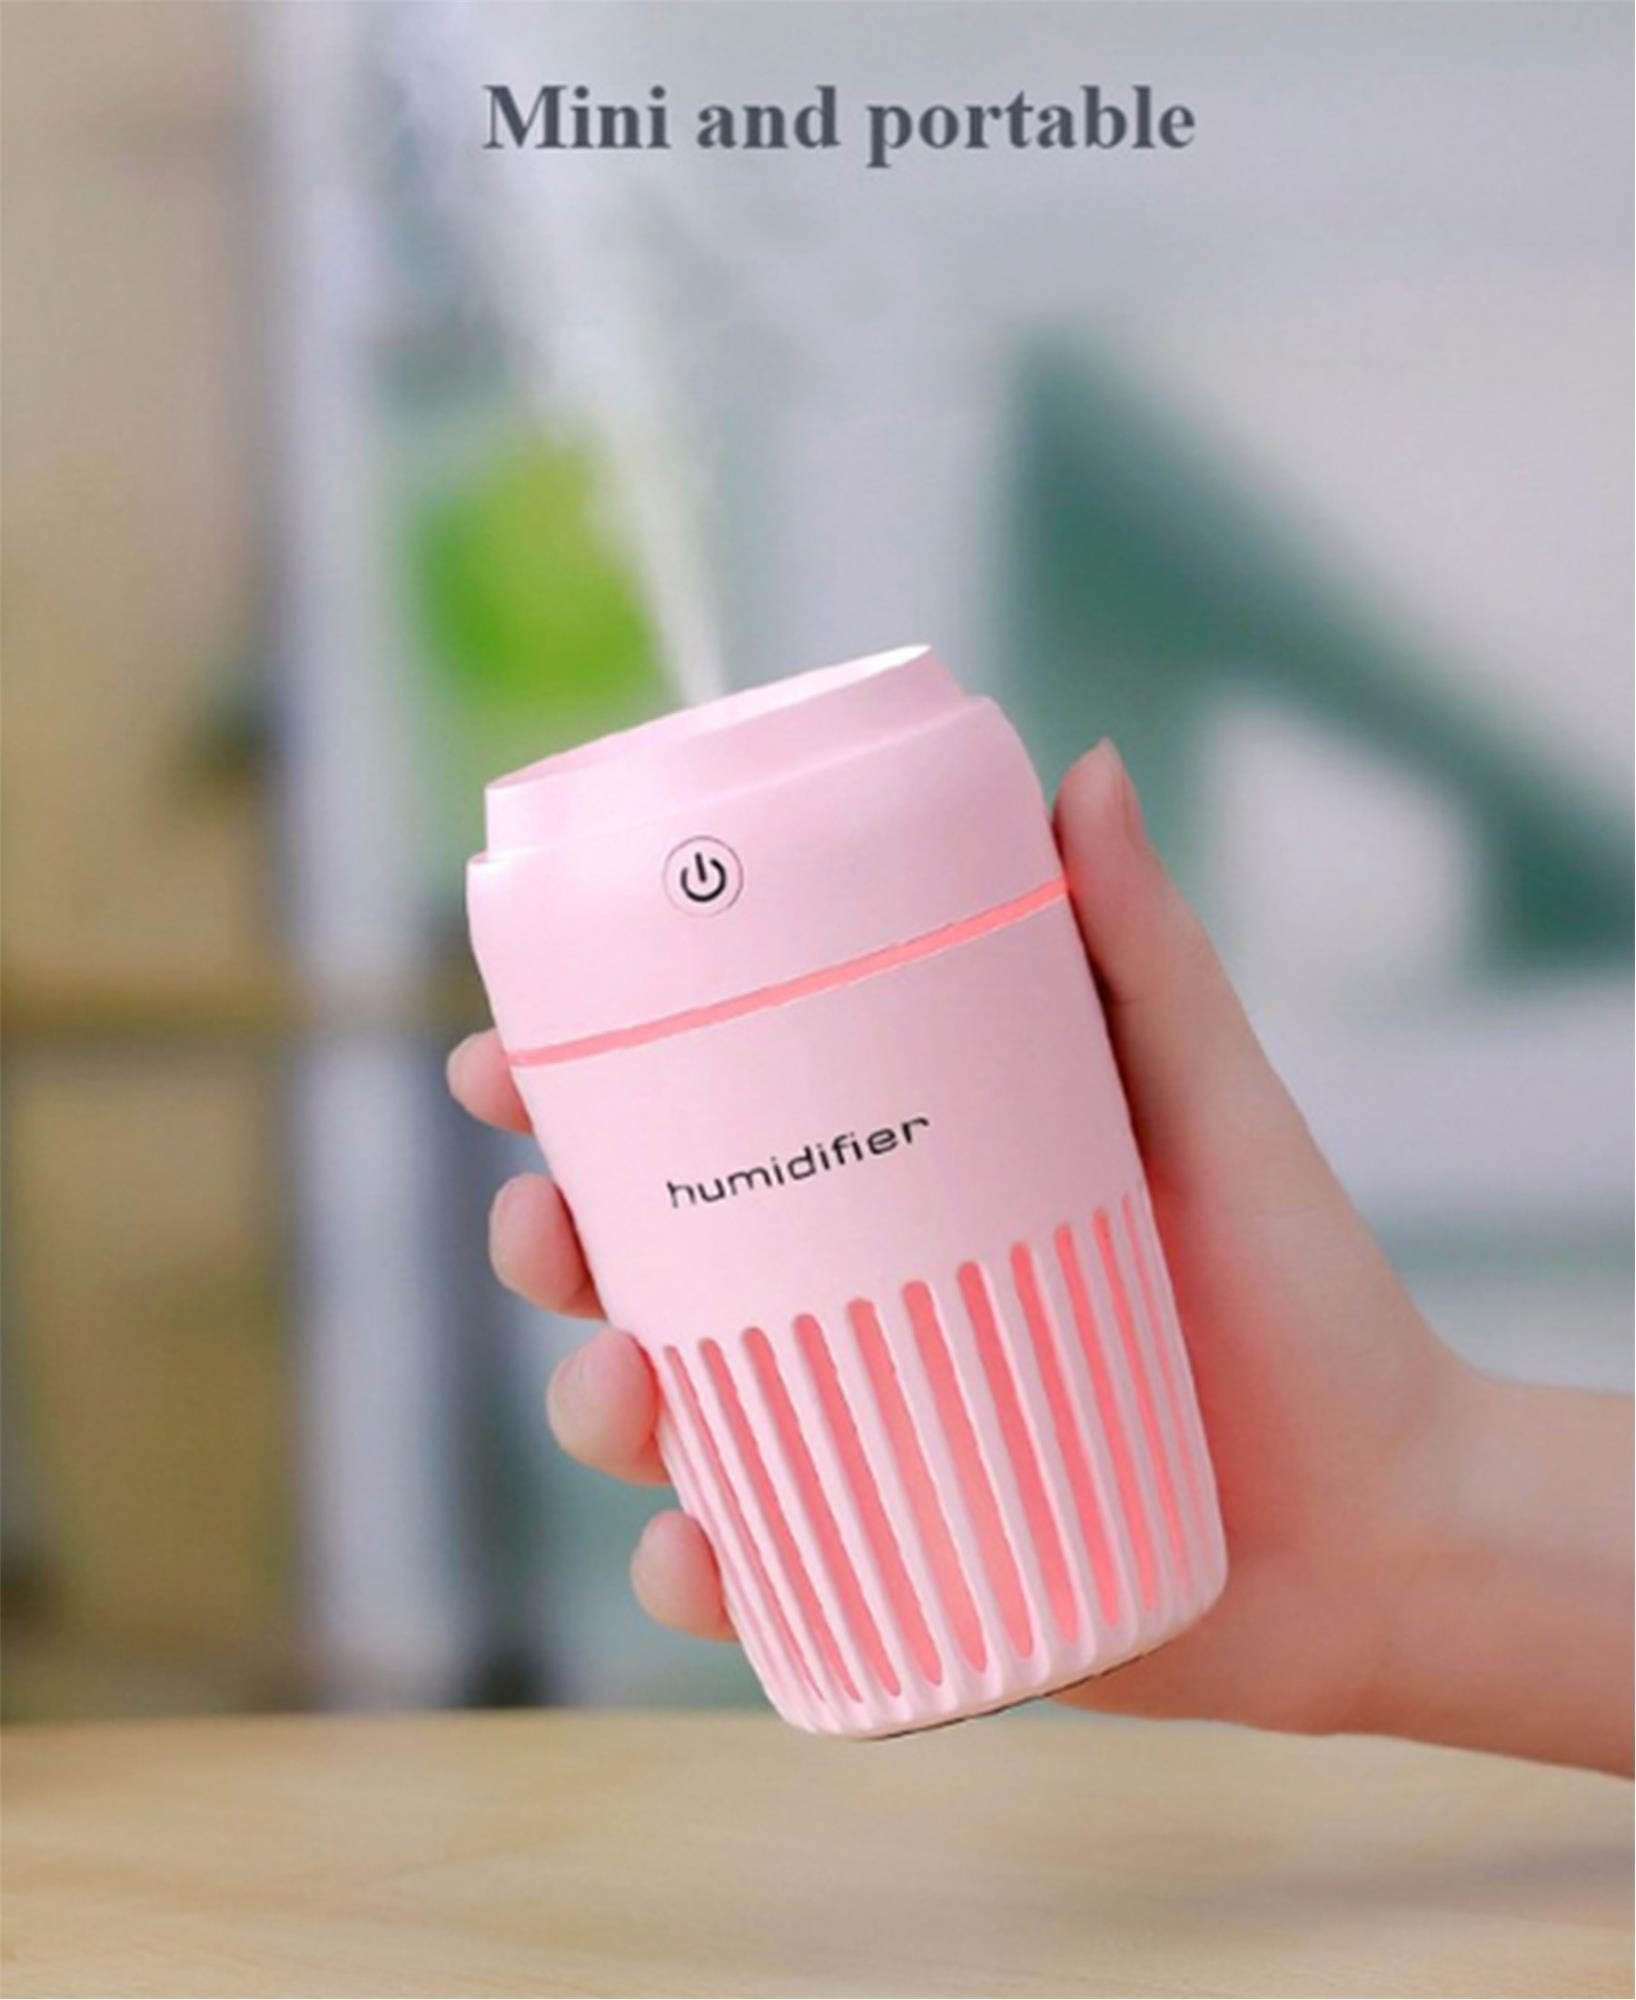 USB Light Up Humidifier - Pink